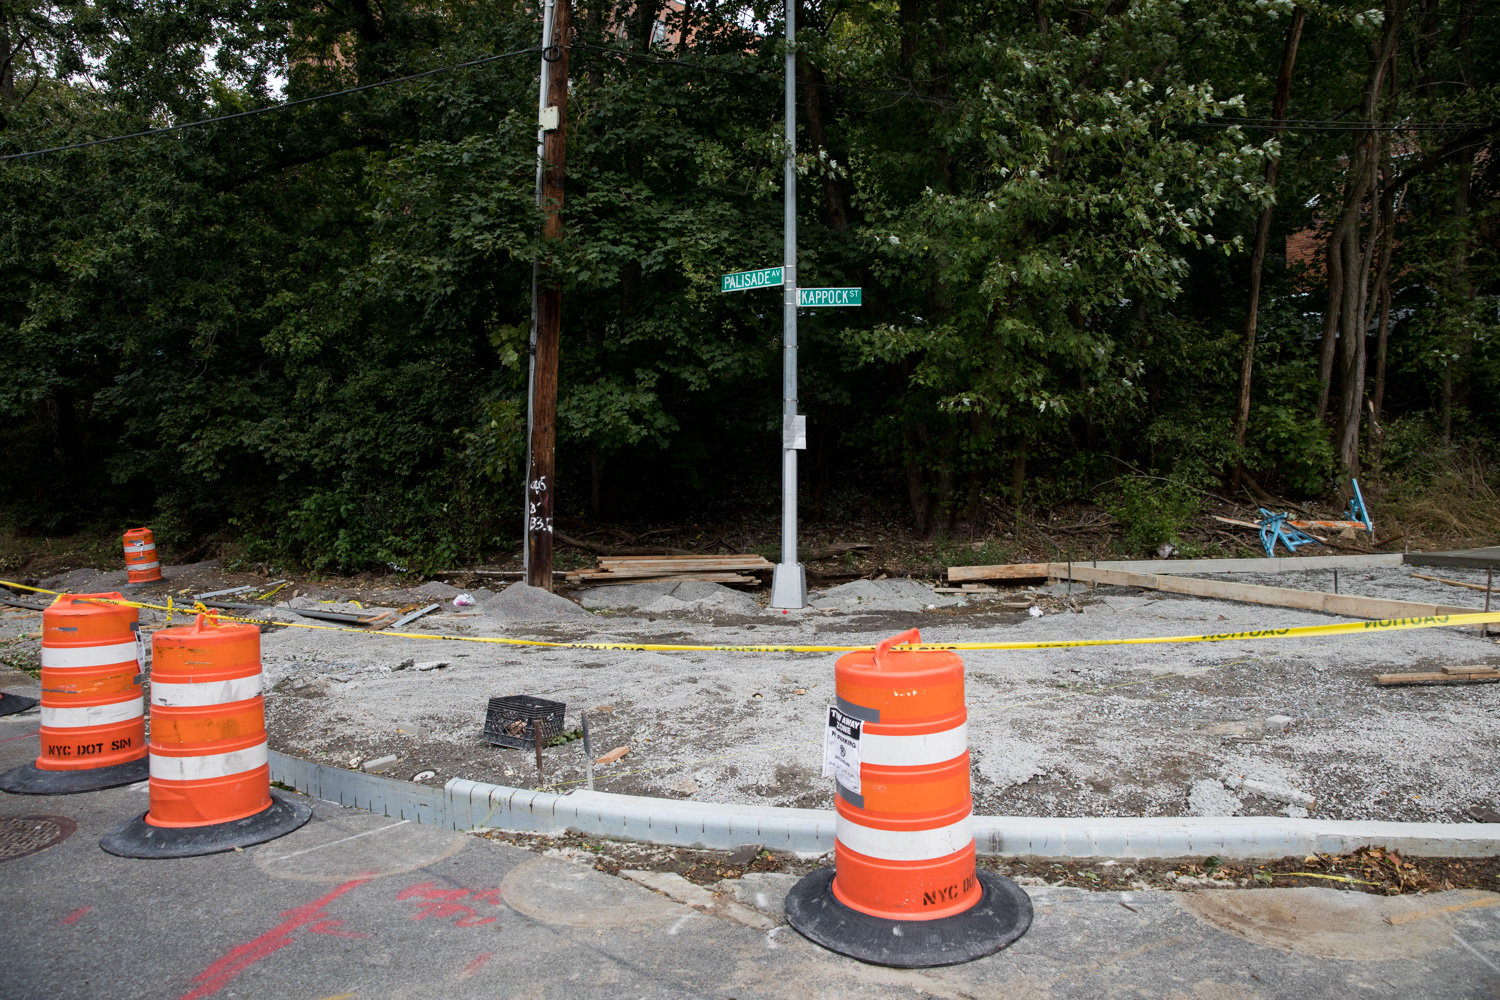 The intersection of Kappock Street and Palisade Avenue is getting more ambulatory real estate thanks to curb extensions, but some neighbors surrounding the work have mixed feelings about the changes.